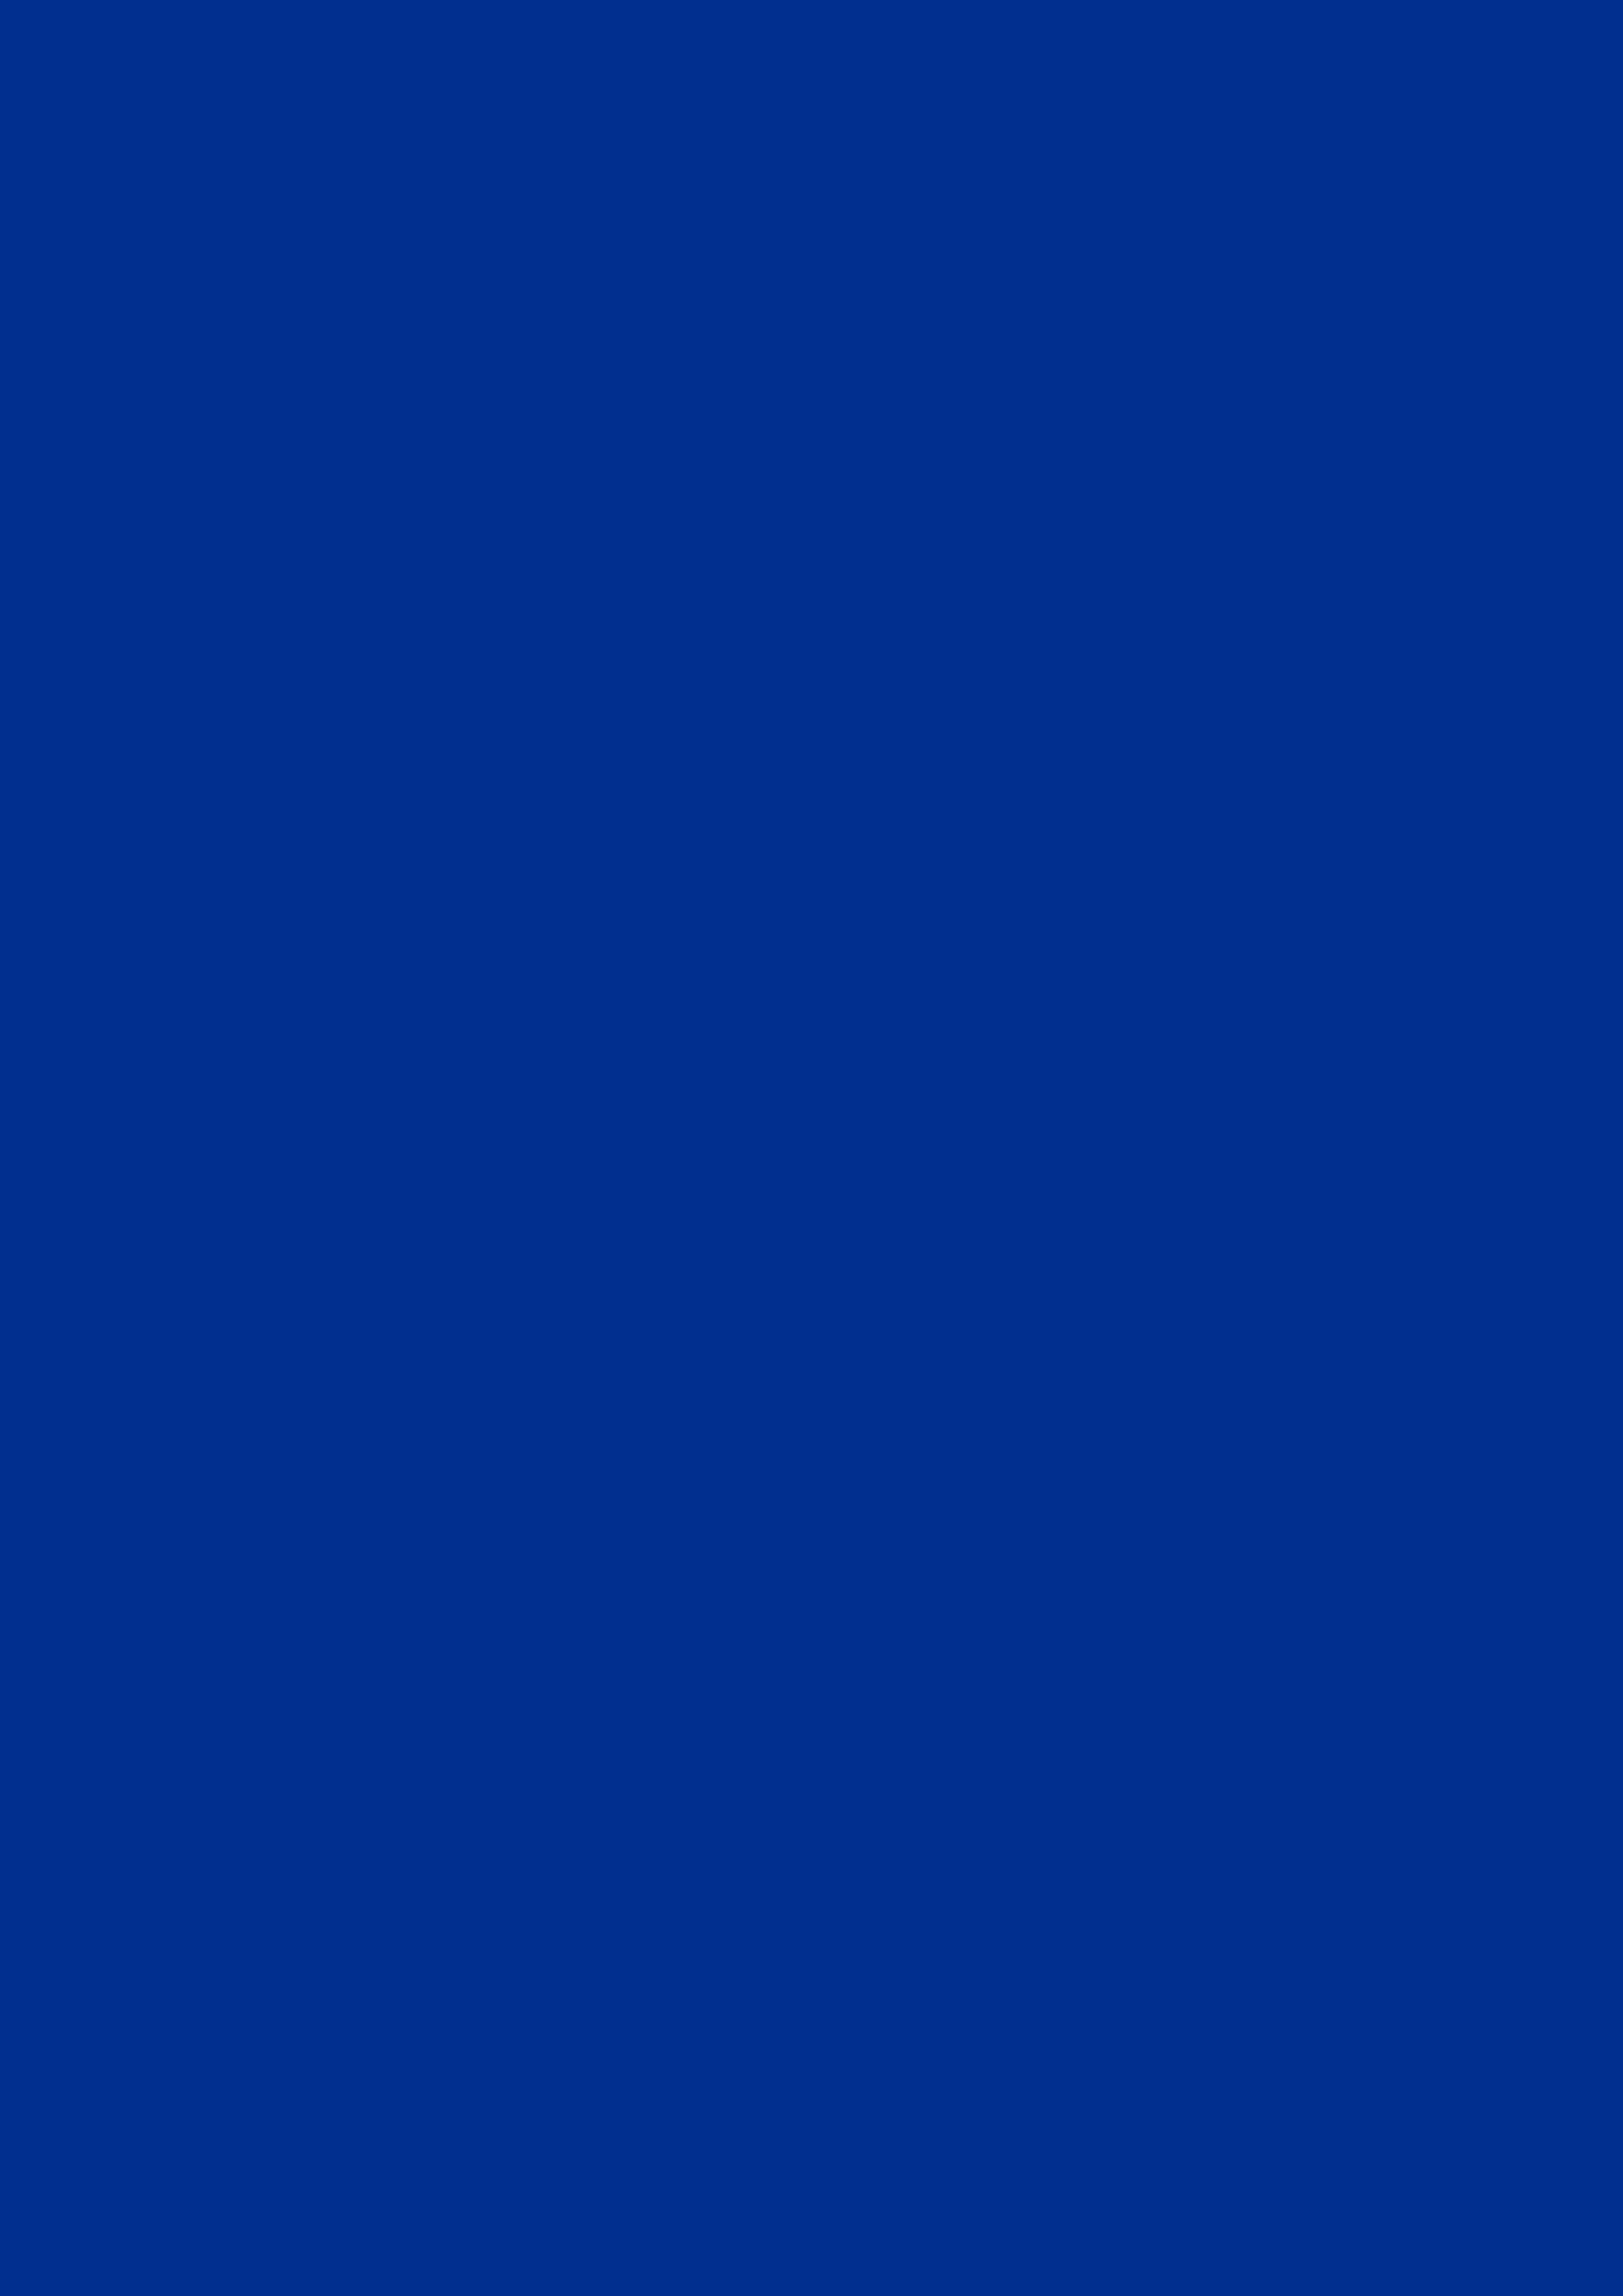 2480x3508 Air Force Dark Blue Solid Color Background